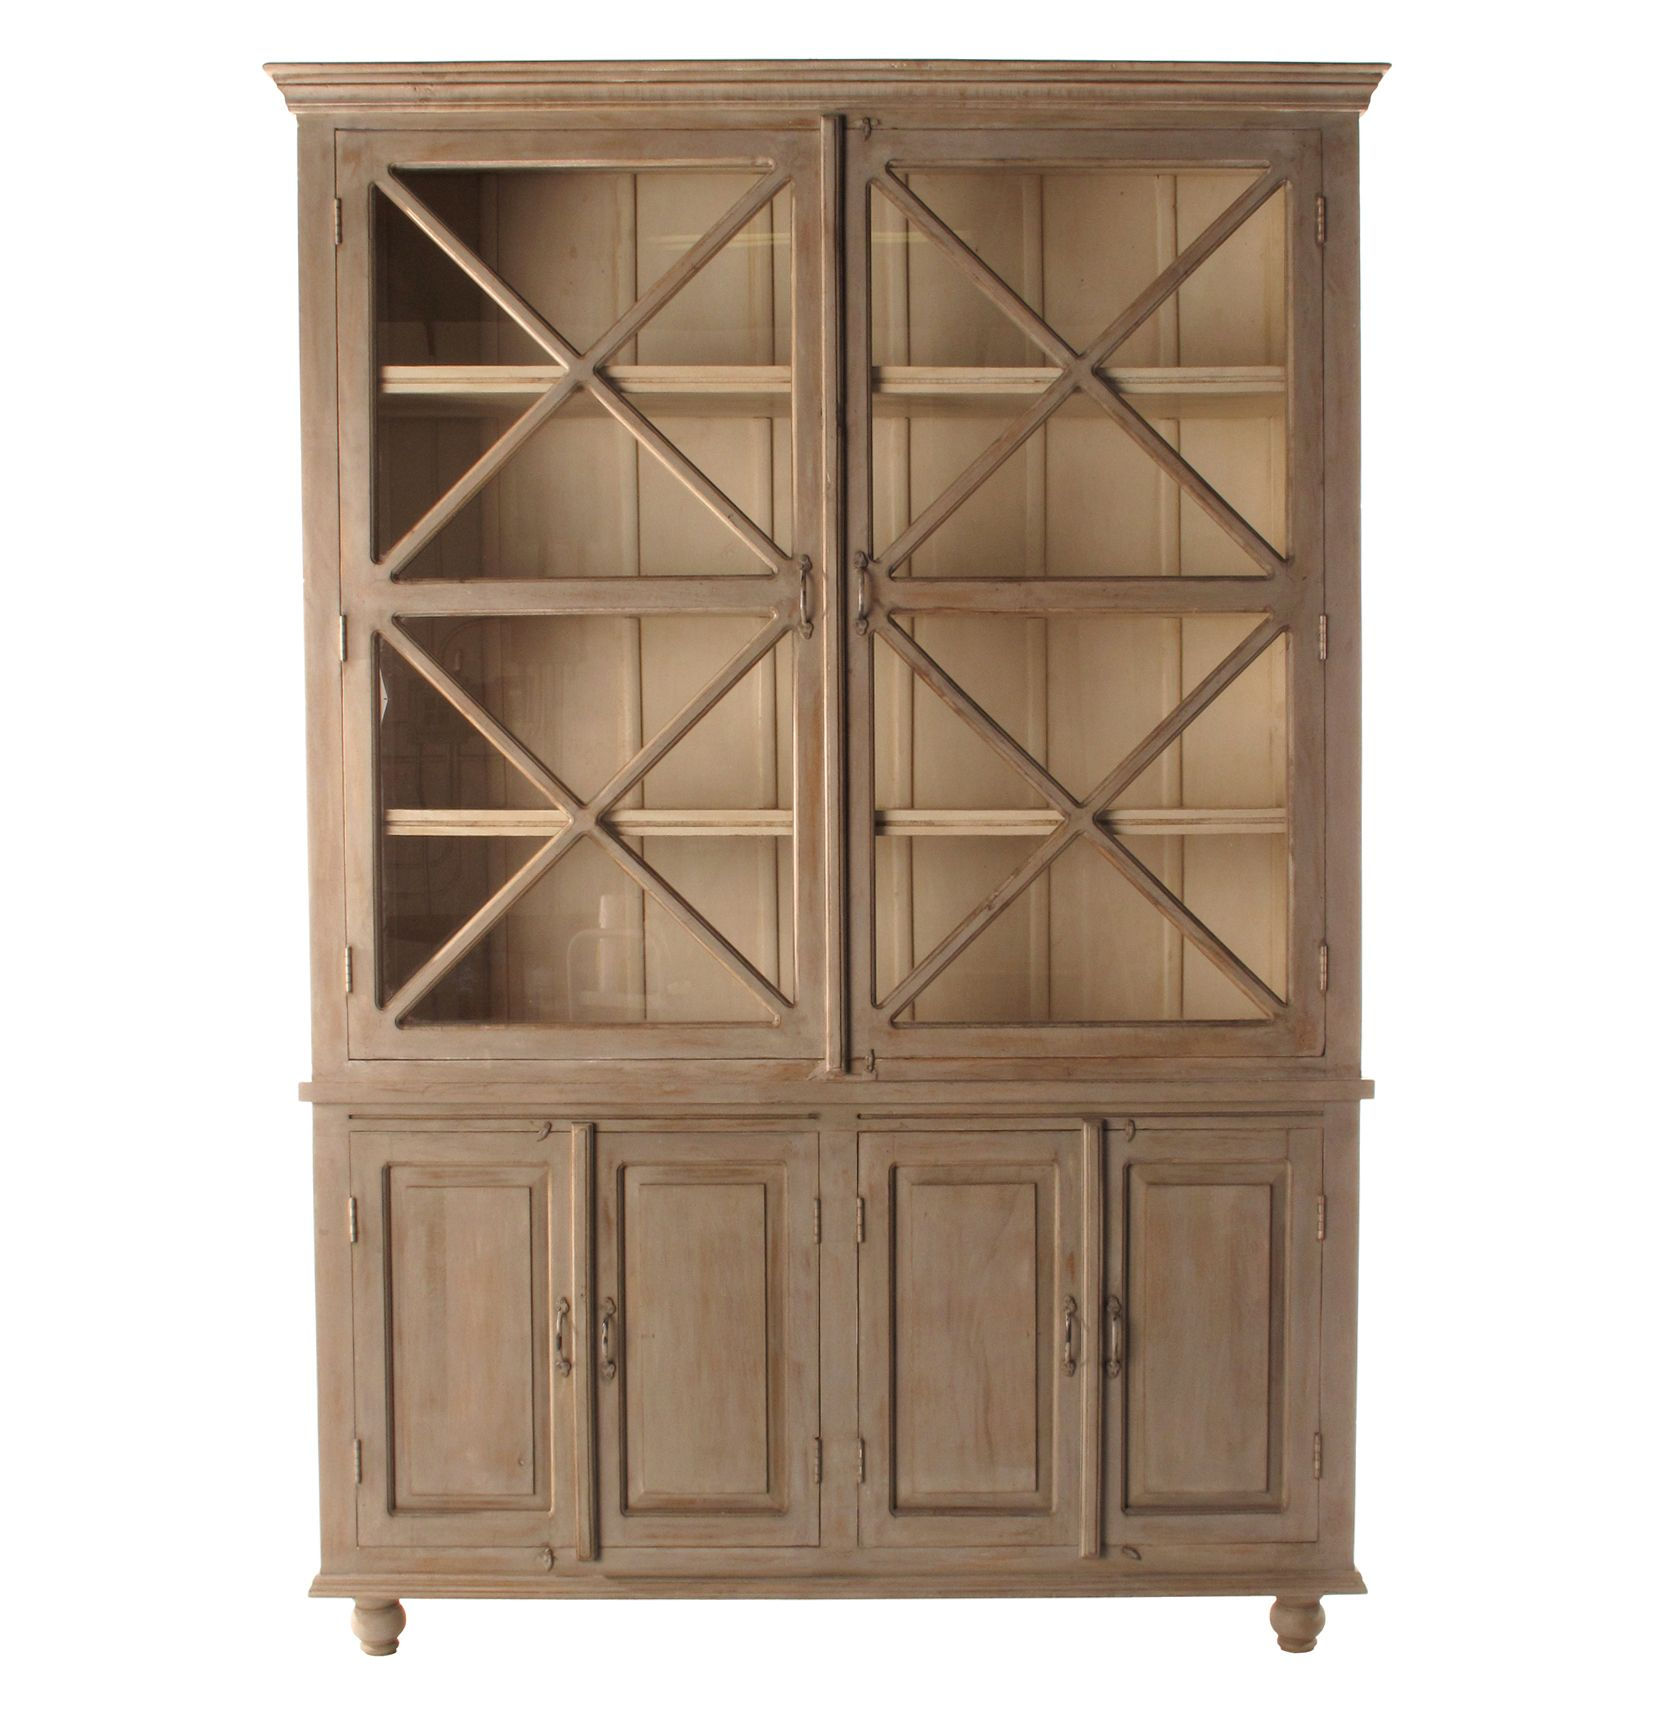 French Country Plantation 2 Door Hutch Cabinet Large From Kathy Kuo Home